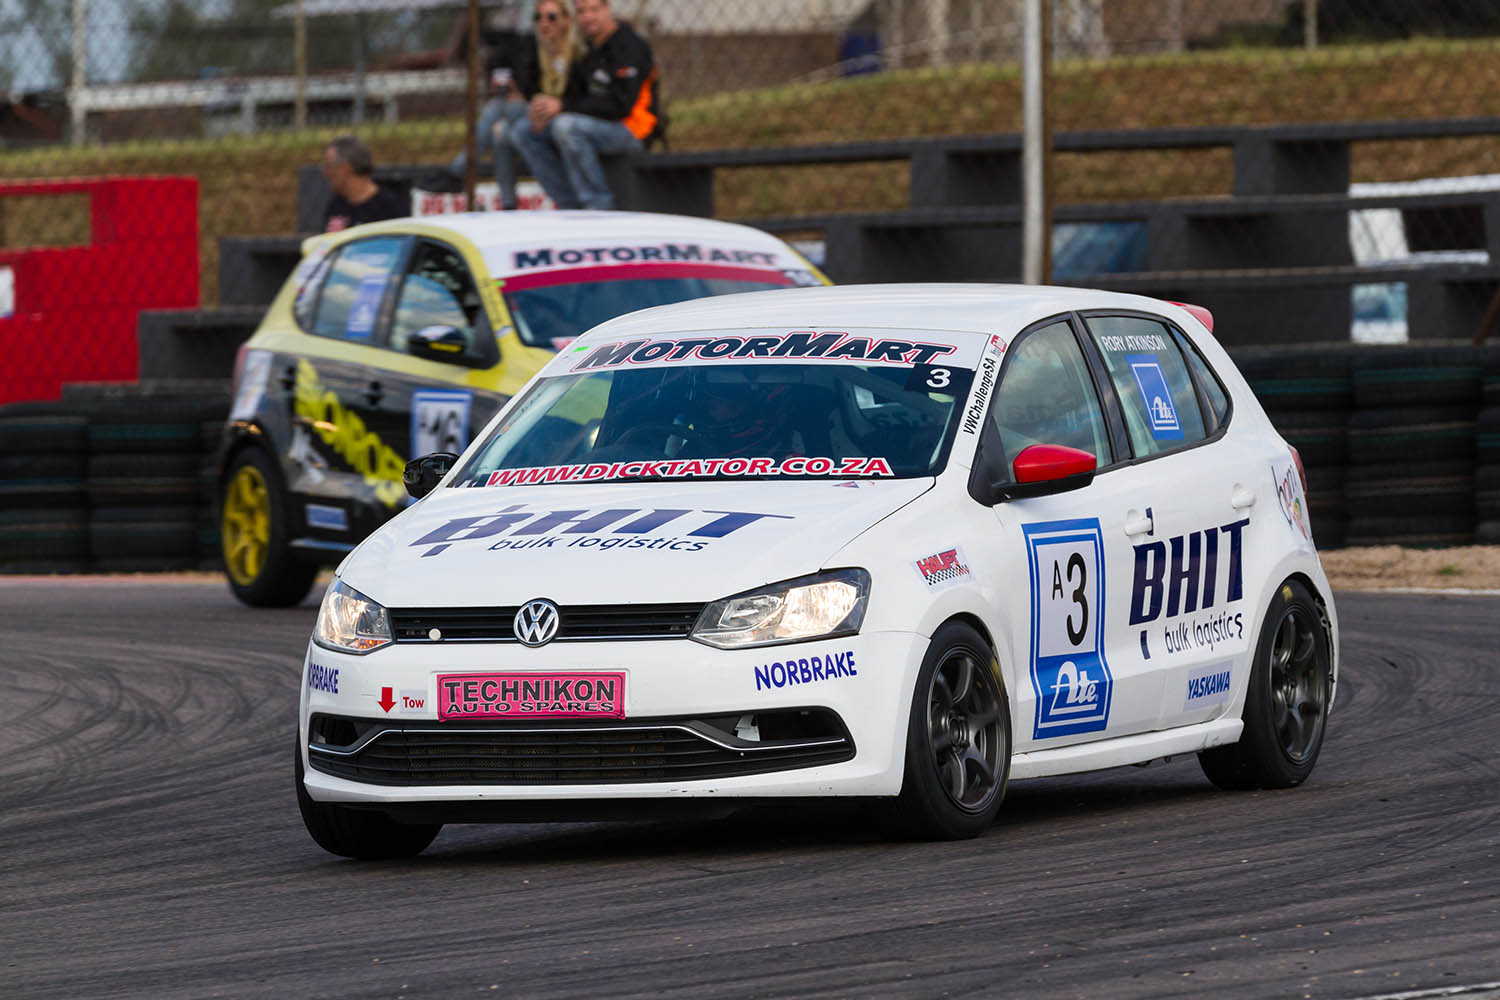 Rory Atkinson took the second class A race win from Lyle Ramsay